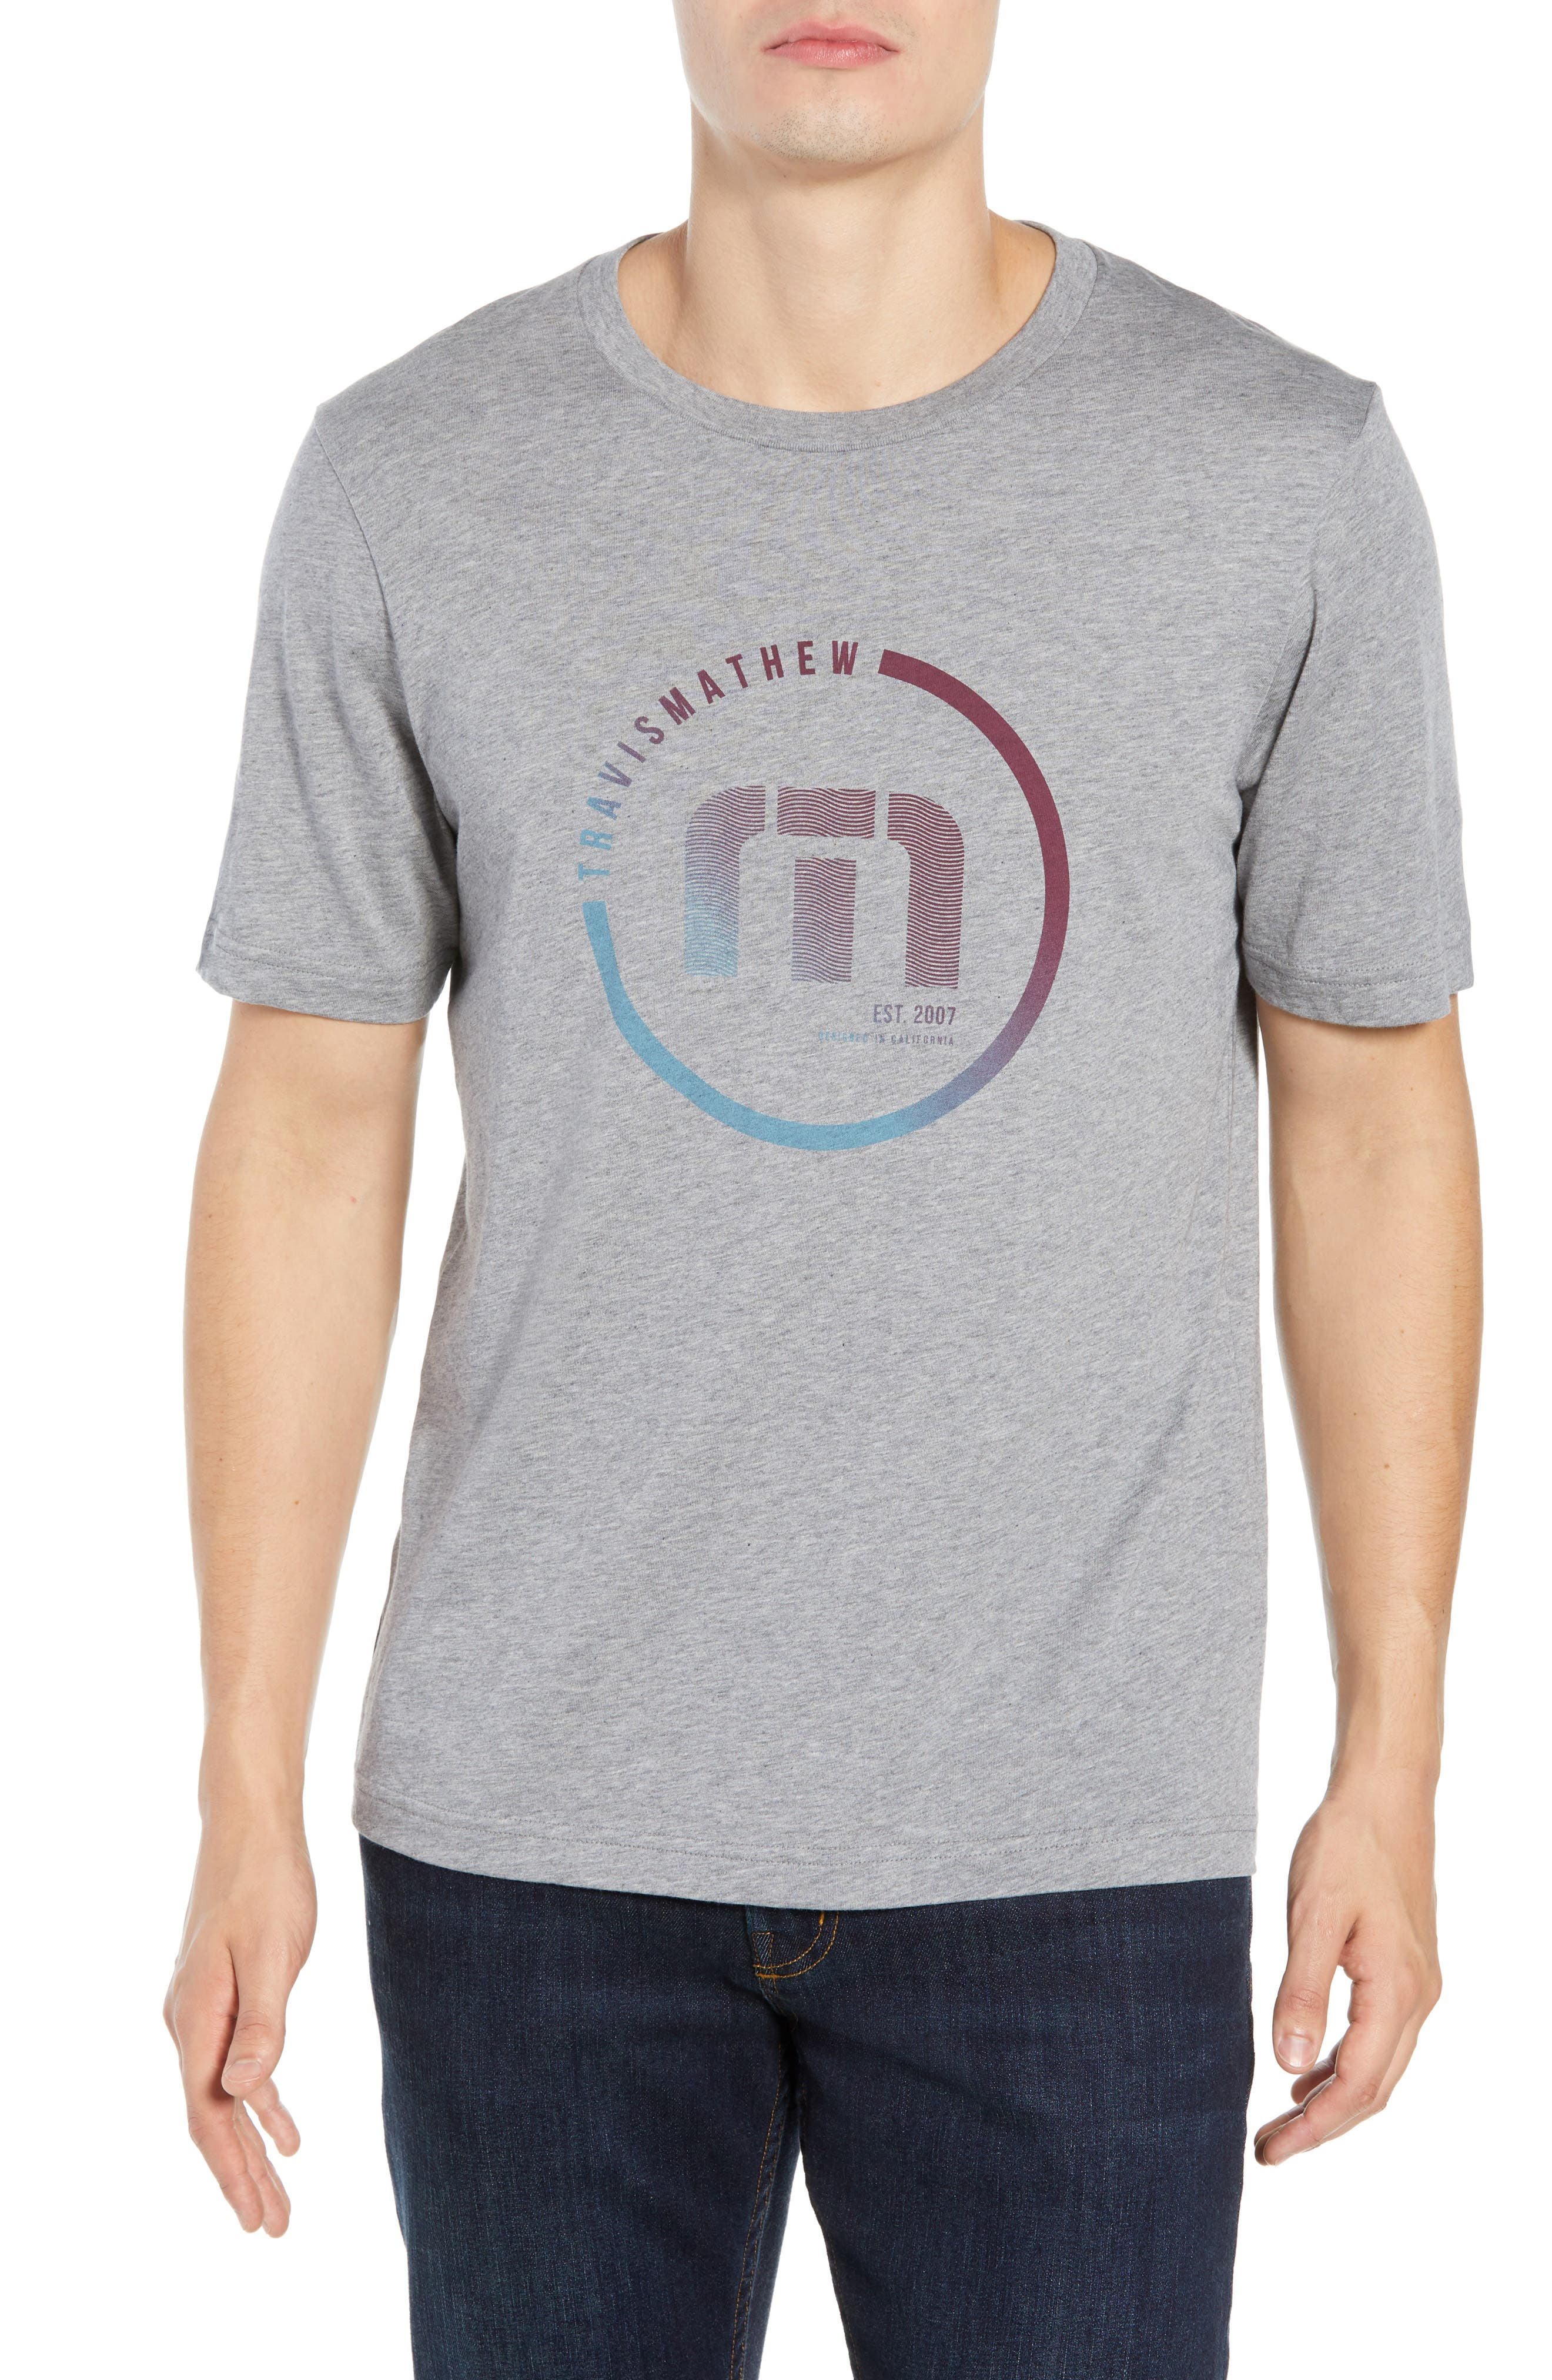 Airheads T-Shirt,                         Main,                         color, HEATHER GREY